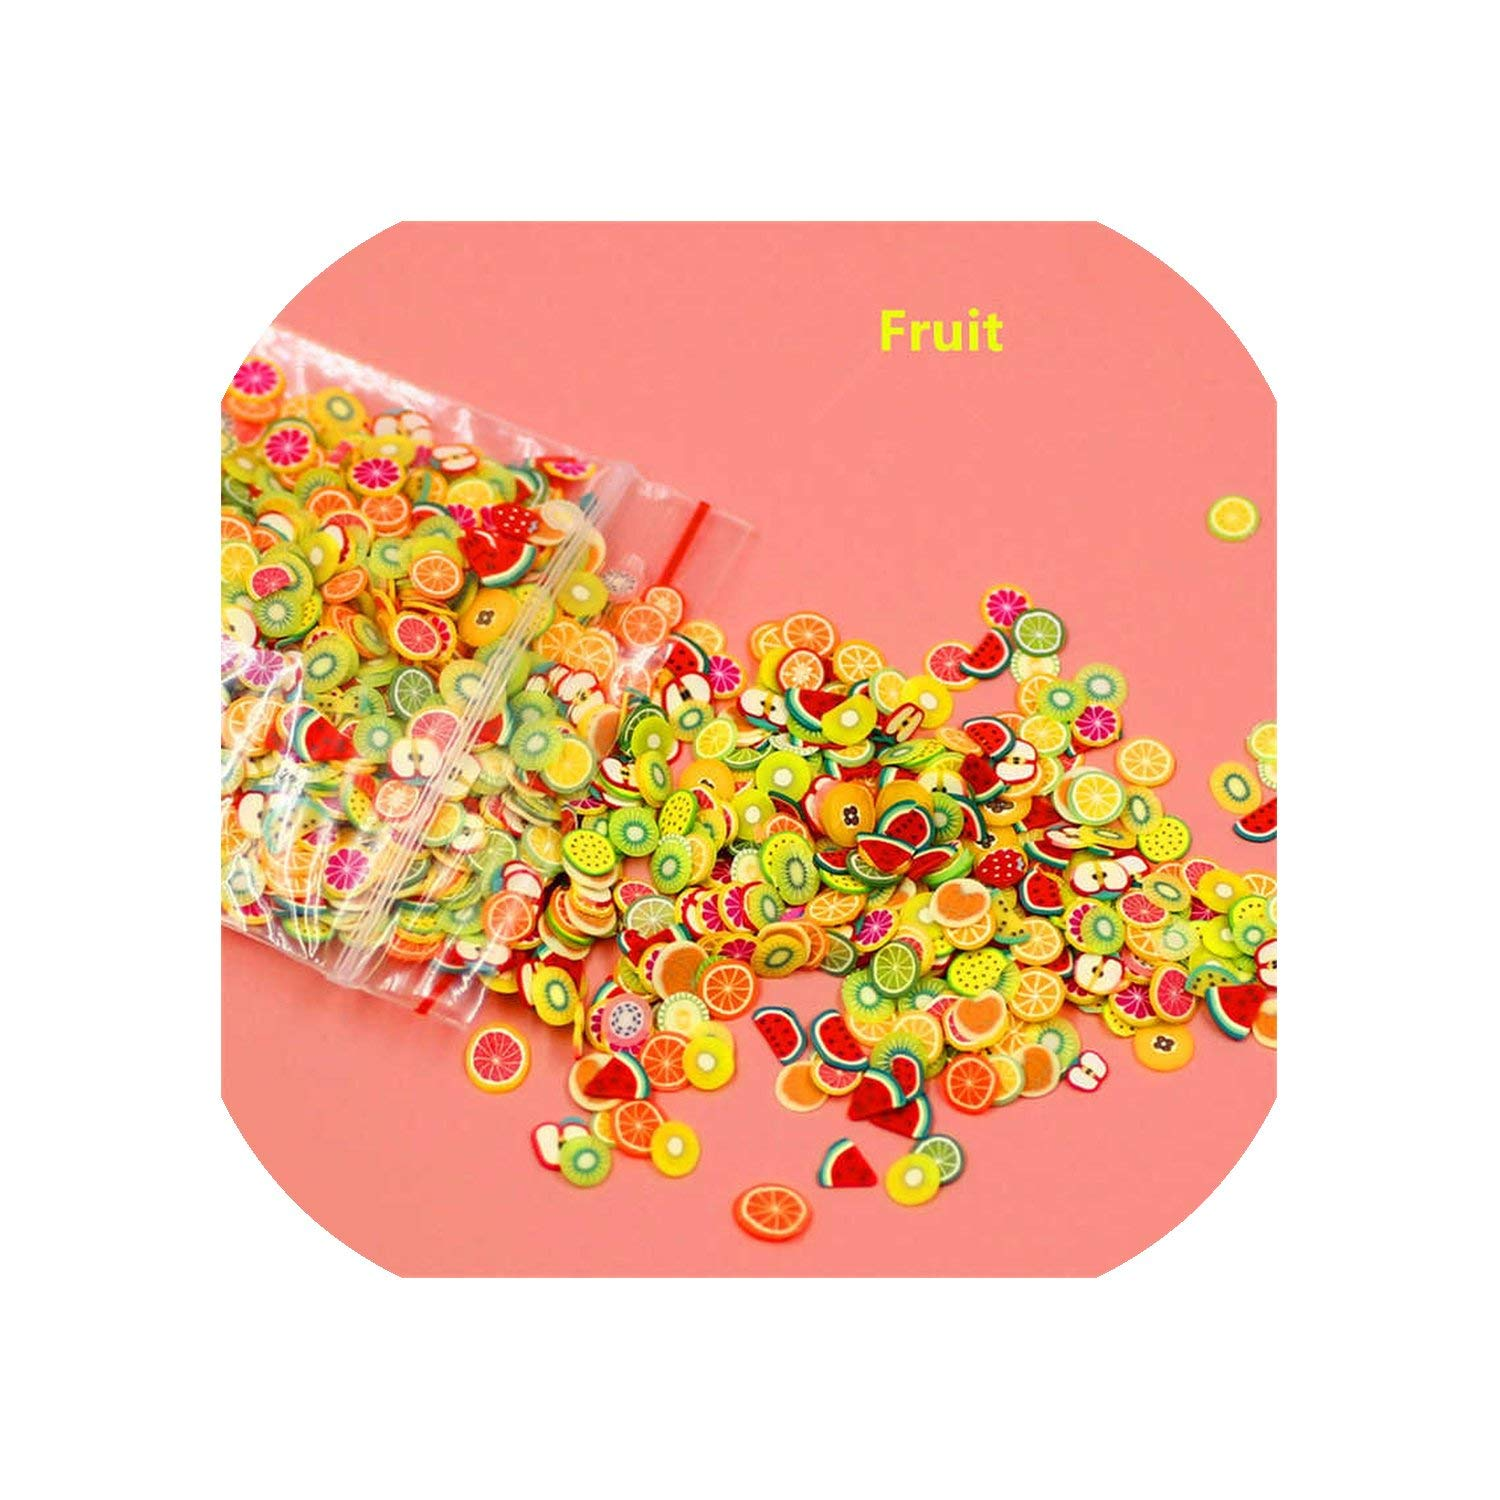 New 1000Pcs/Pack Nail Art 3D Fruit Fimo Slices Polymer Clay Diy Slice Decoration Nail Sticker Mixed Stype For Choice,Furiut by entertainment-moment